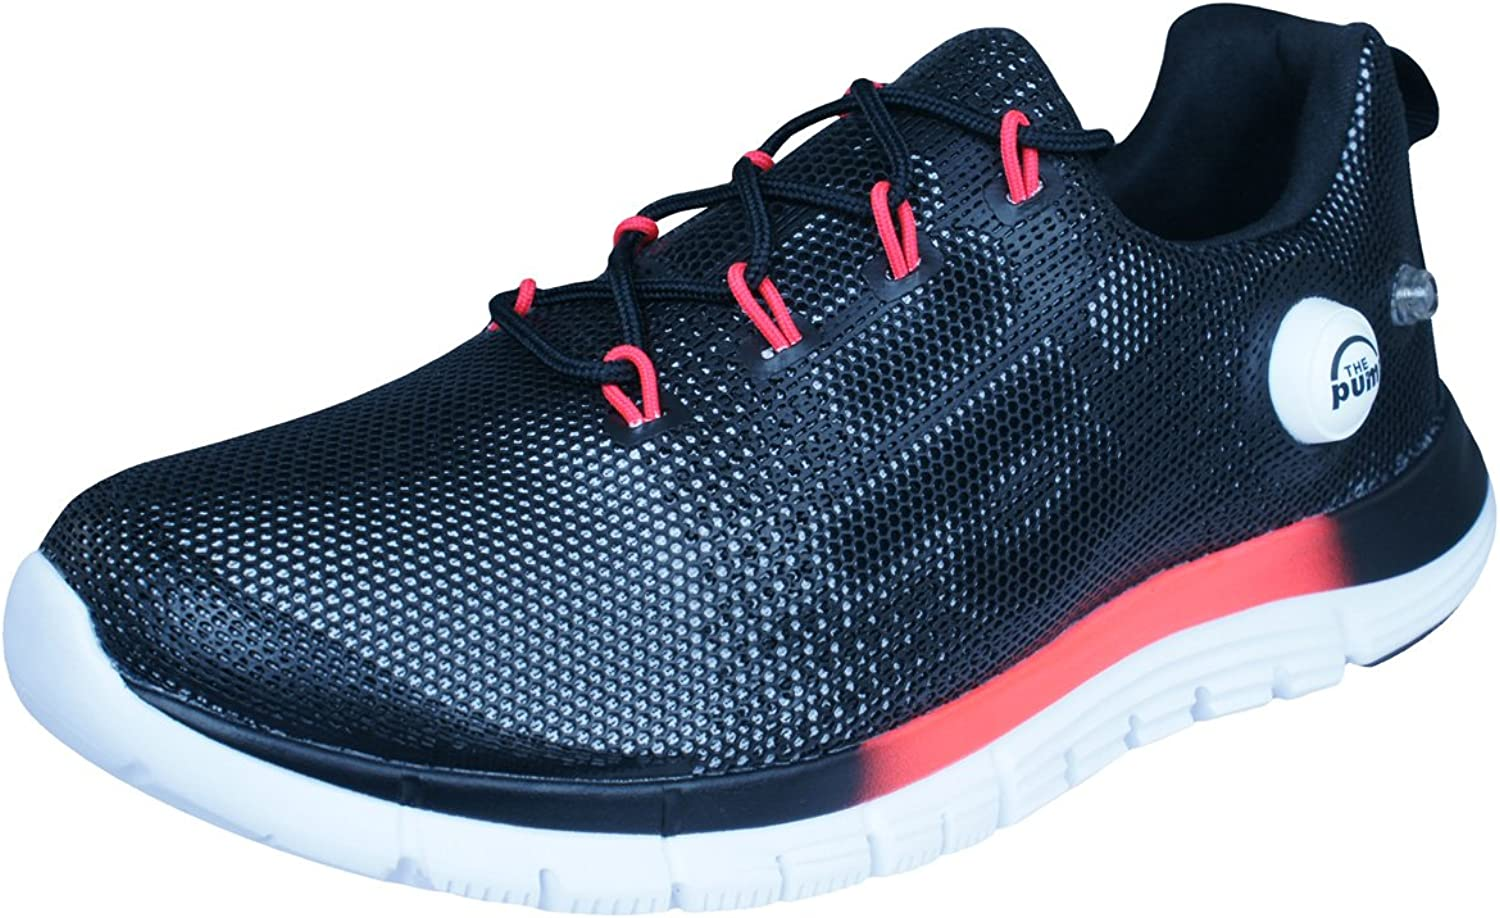 Reebok Zpump Fusion PU Womens Running Sneakers